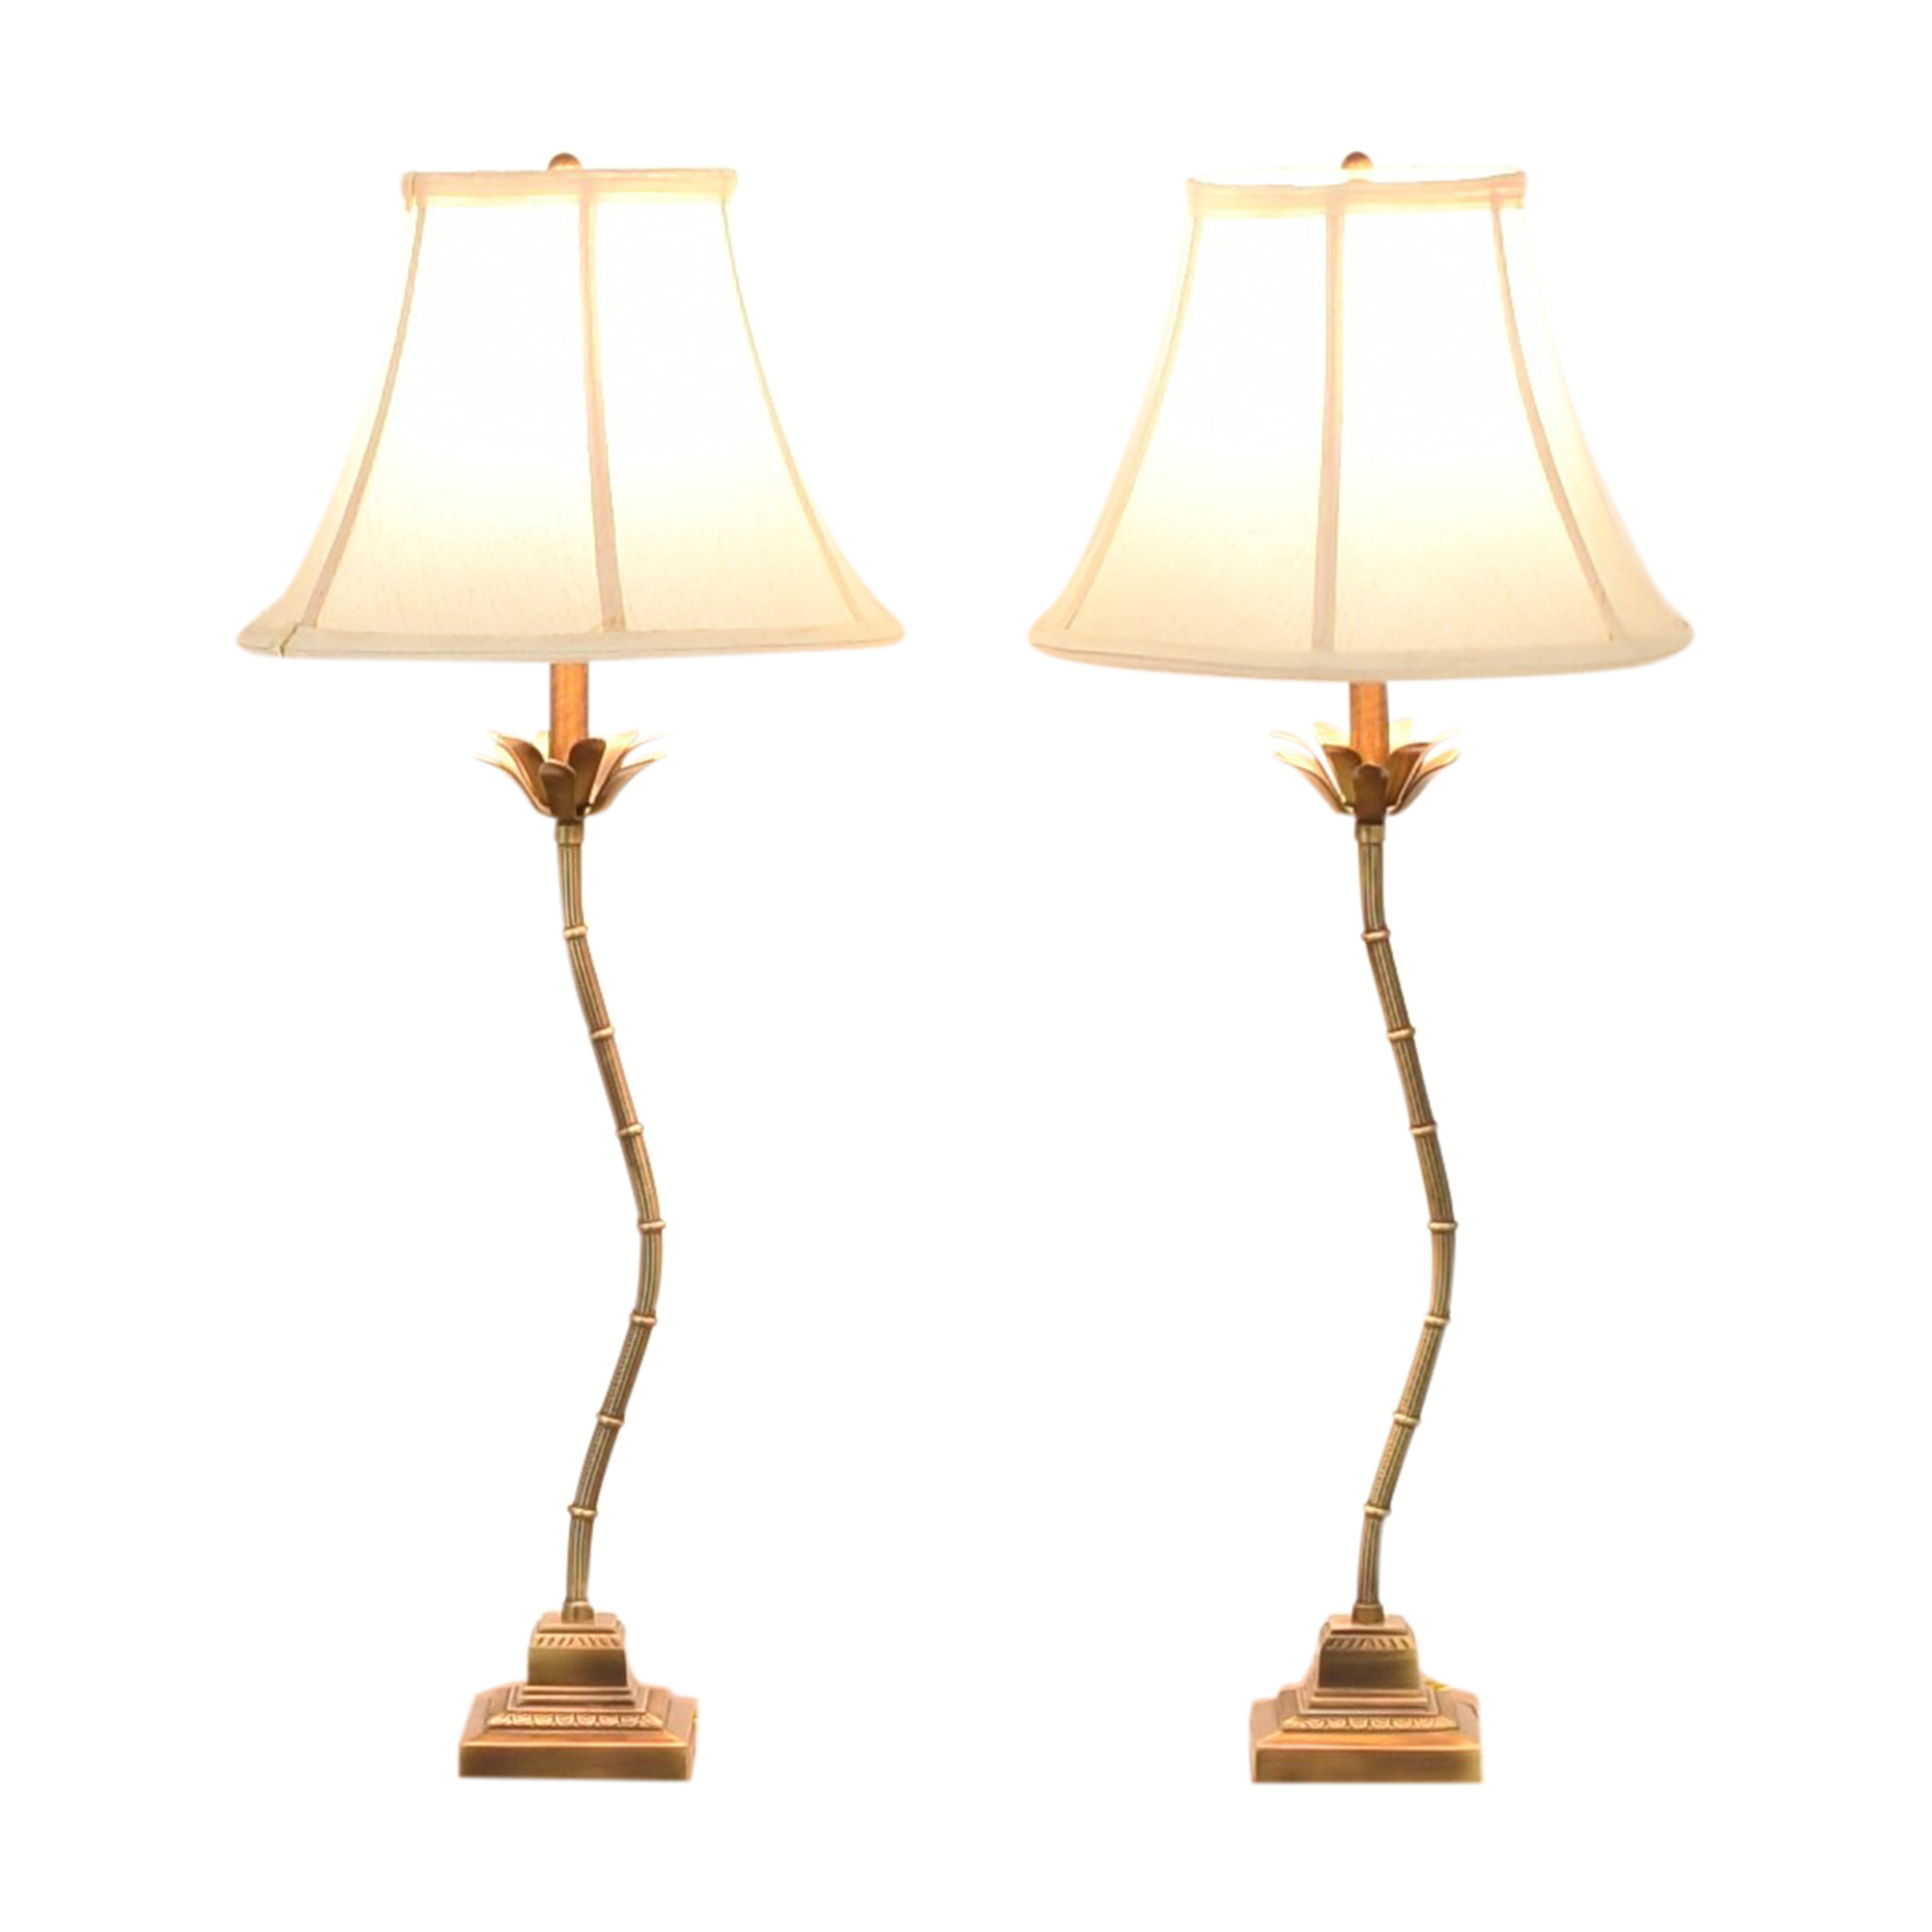 Bamboo Table Lamps Decor